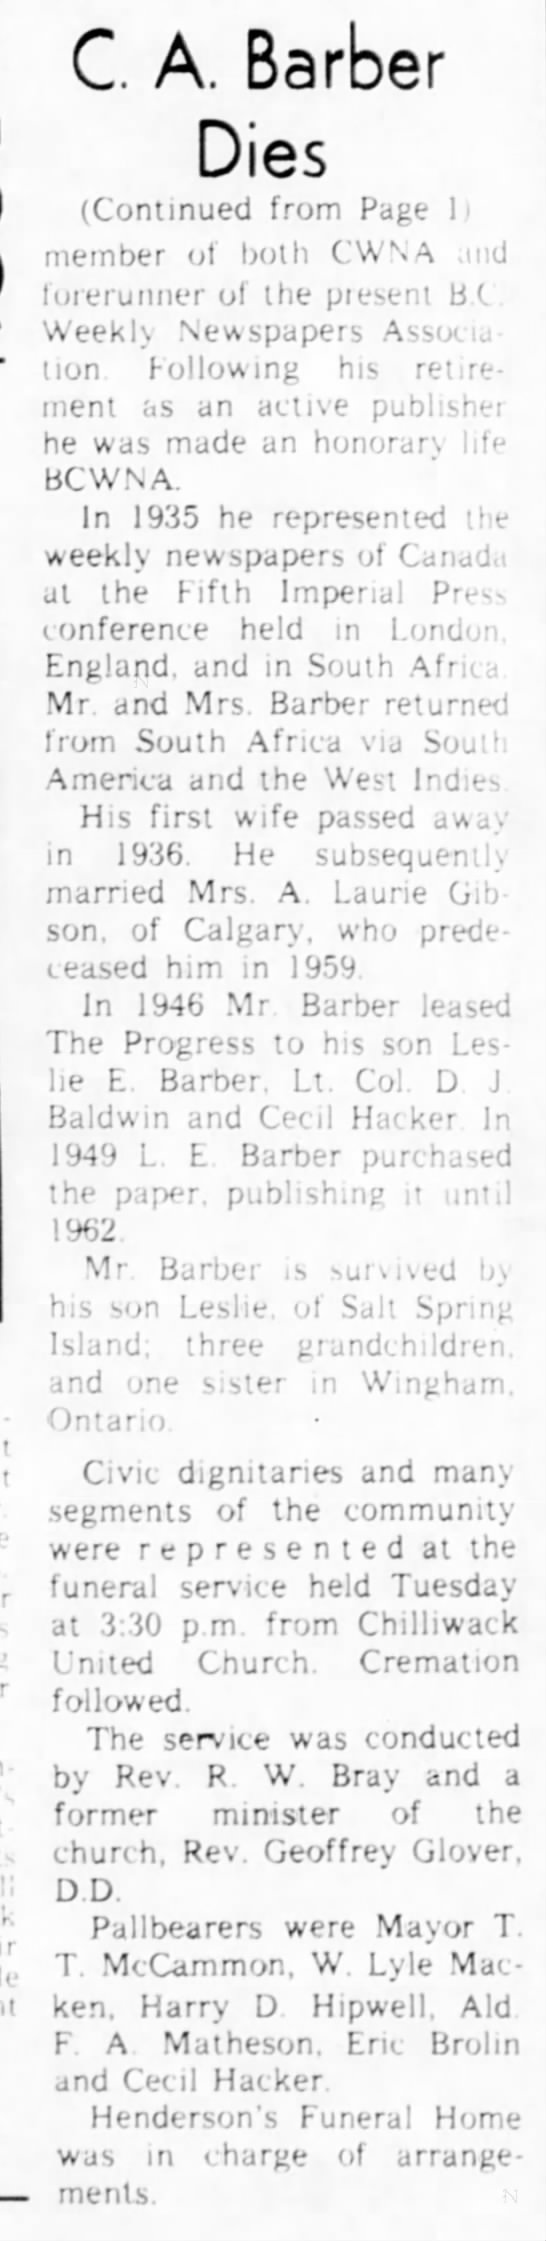 Charles Death Article con'd on Page 12.  The Chilliwack Progress.  16 Dec 1964 - C A. Barber Dies (Continued from Page 1 member...